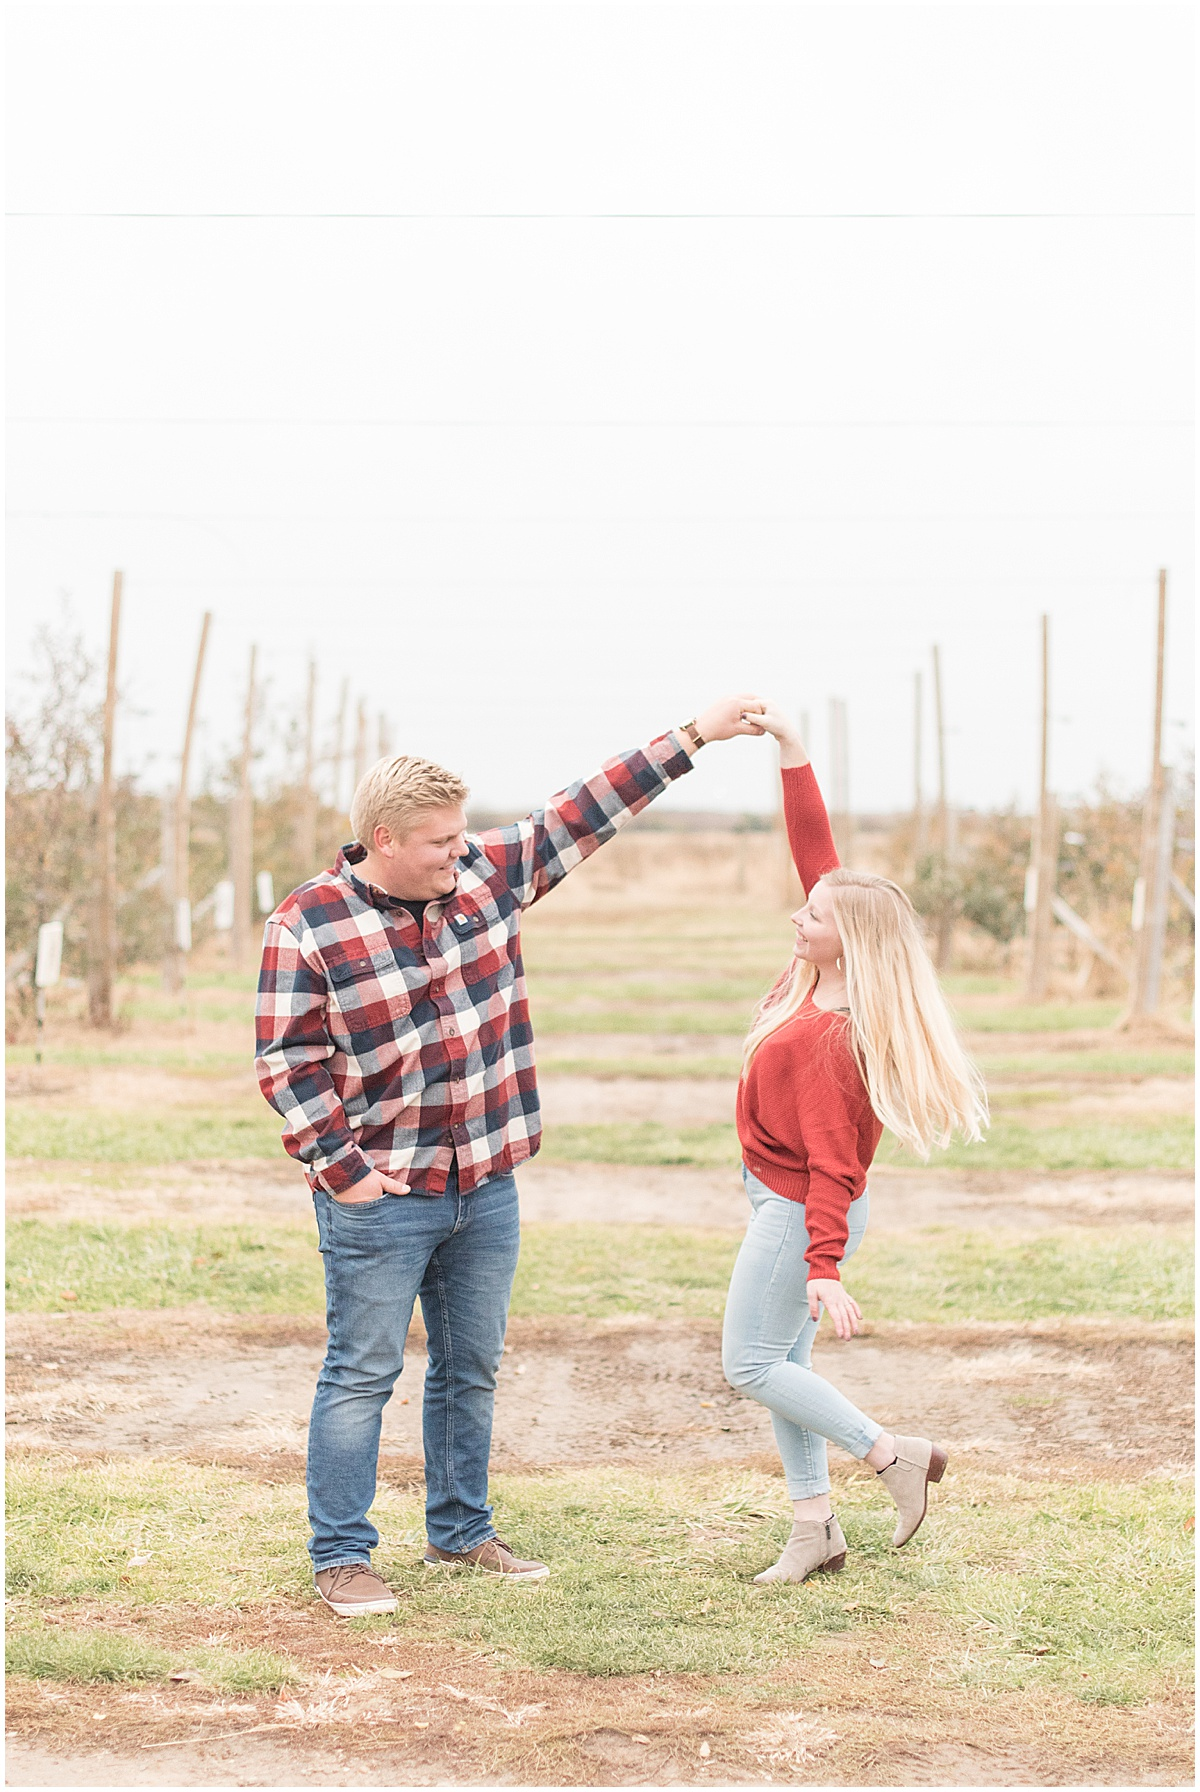 Tyler Van Wanzeele and Baileigh Fleming engagement photos at Wea Creek Orchard in Lafayette Indiana30.jpg